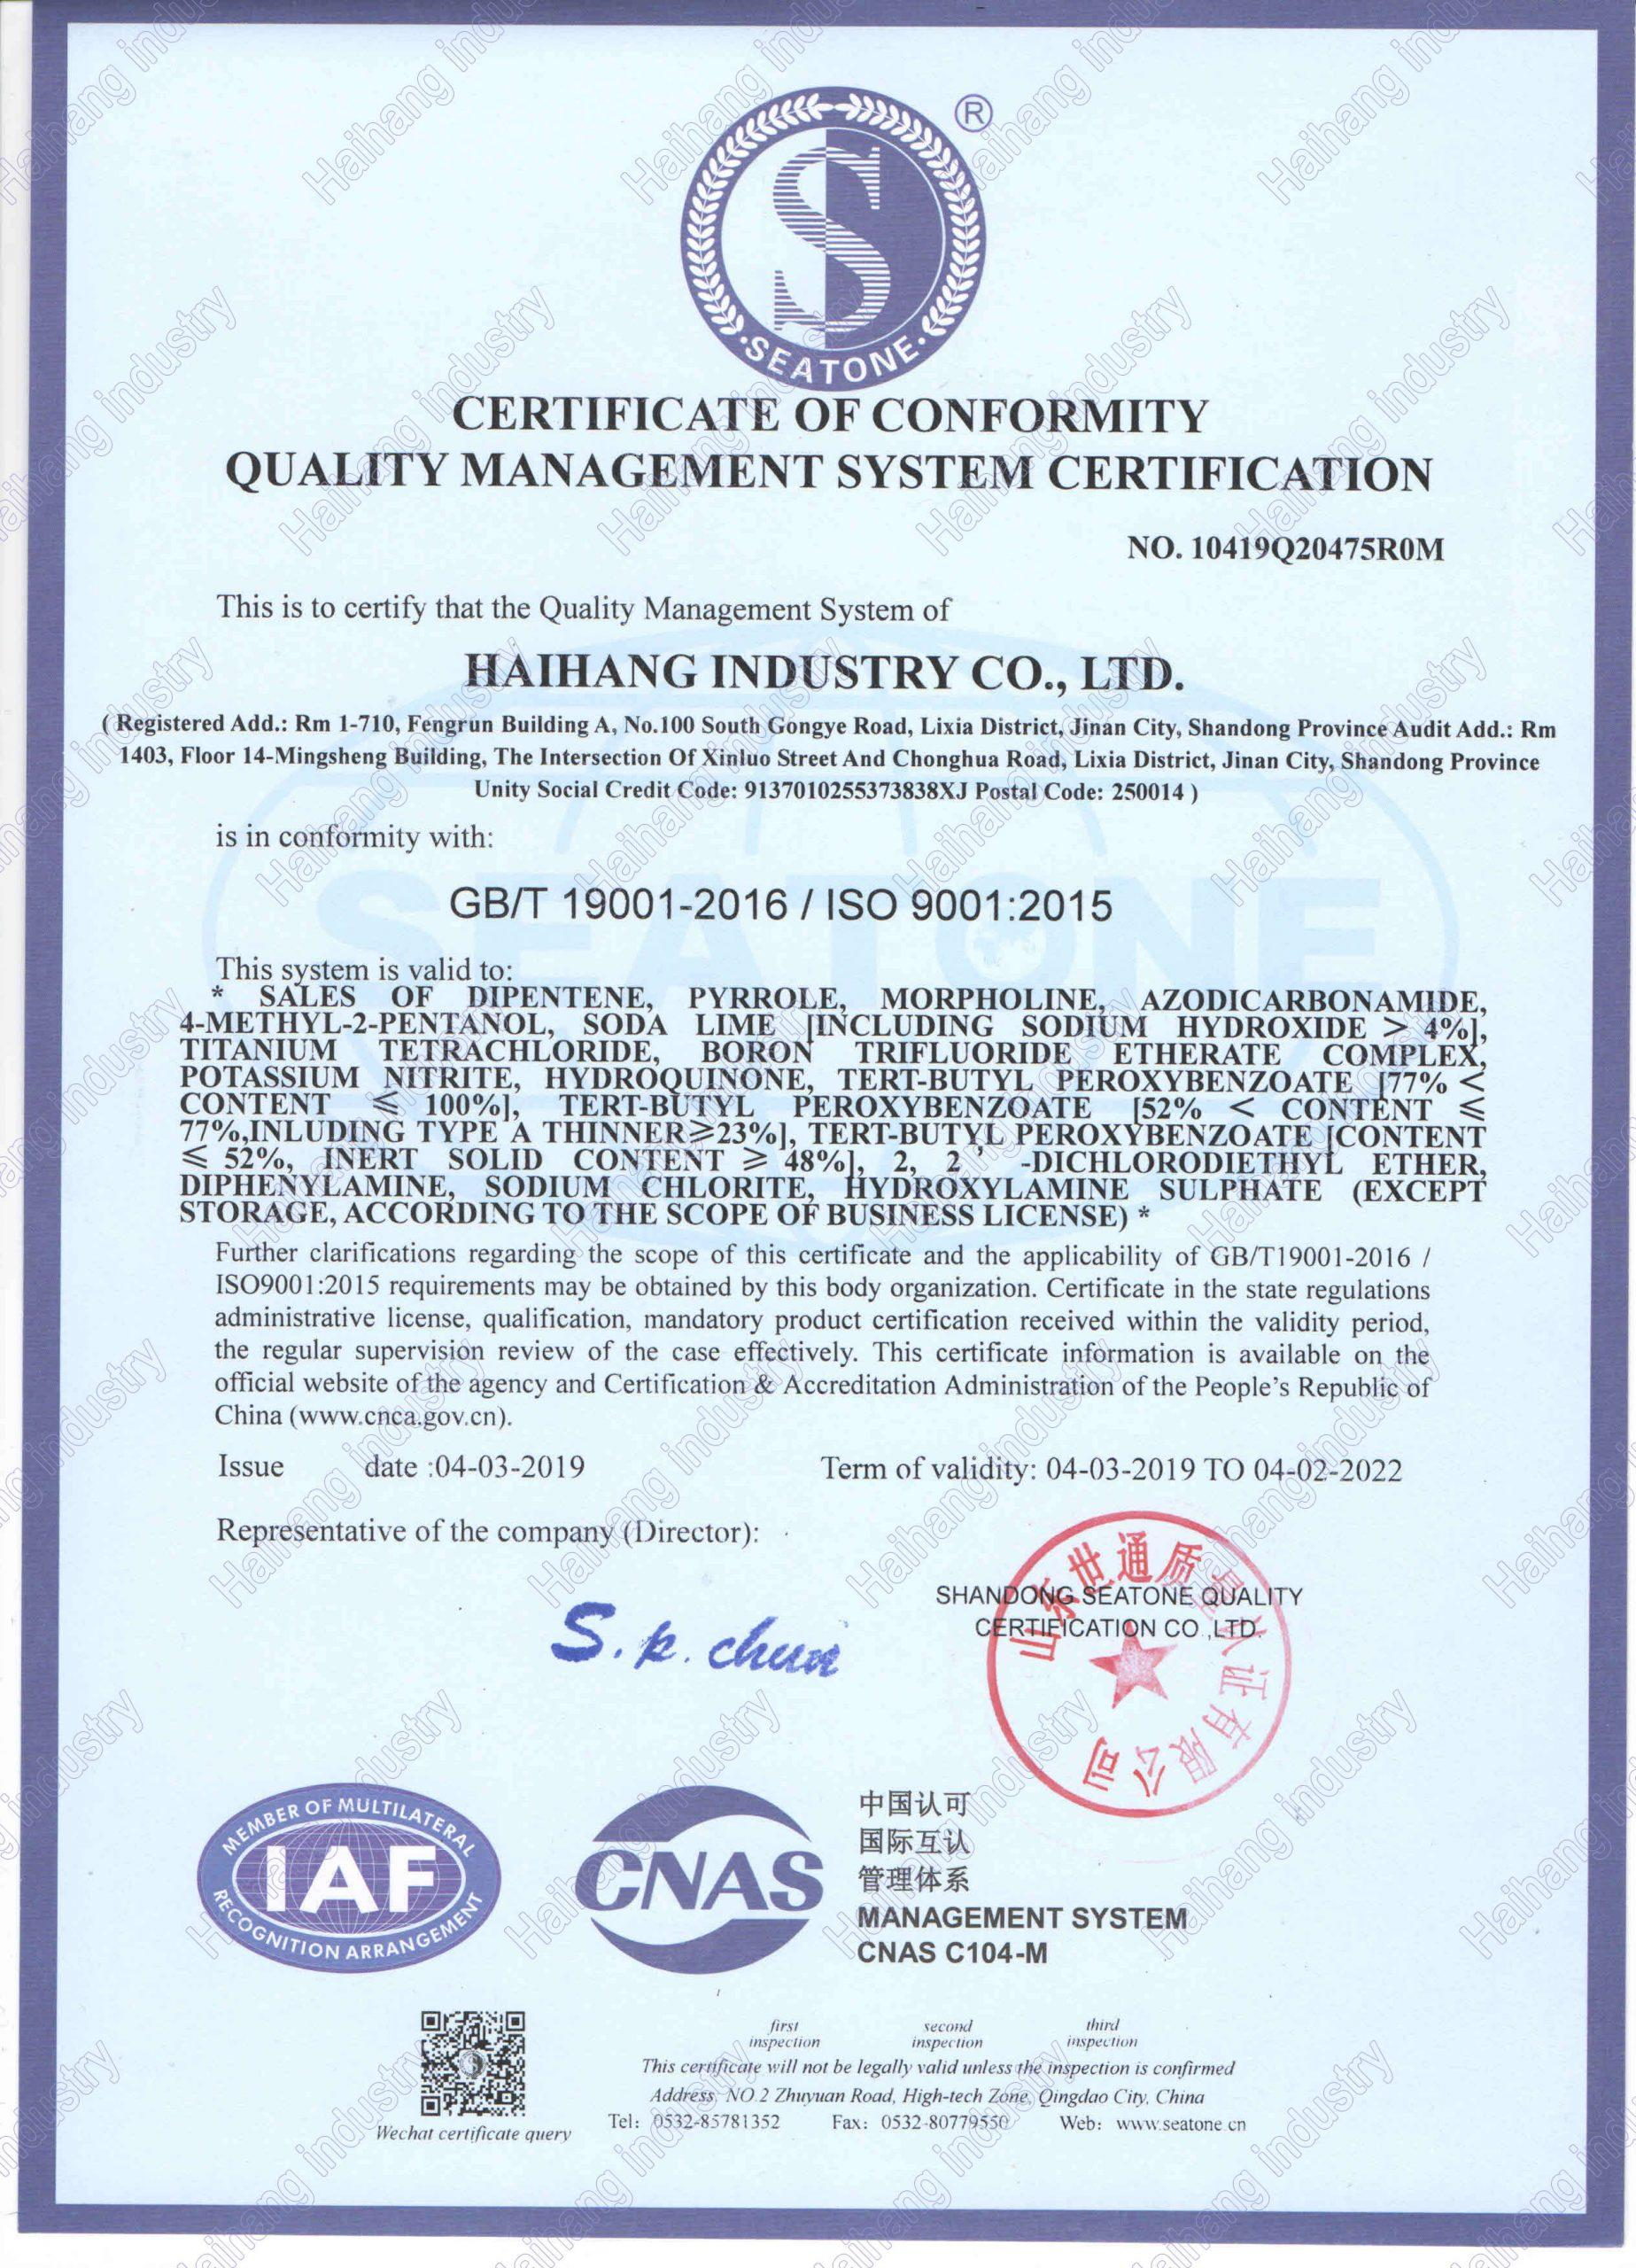 ISO9001:2005 certificate of Haihang Industry